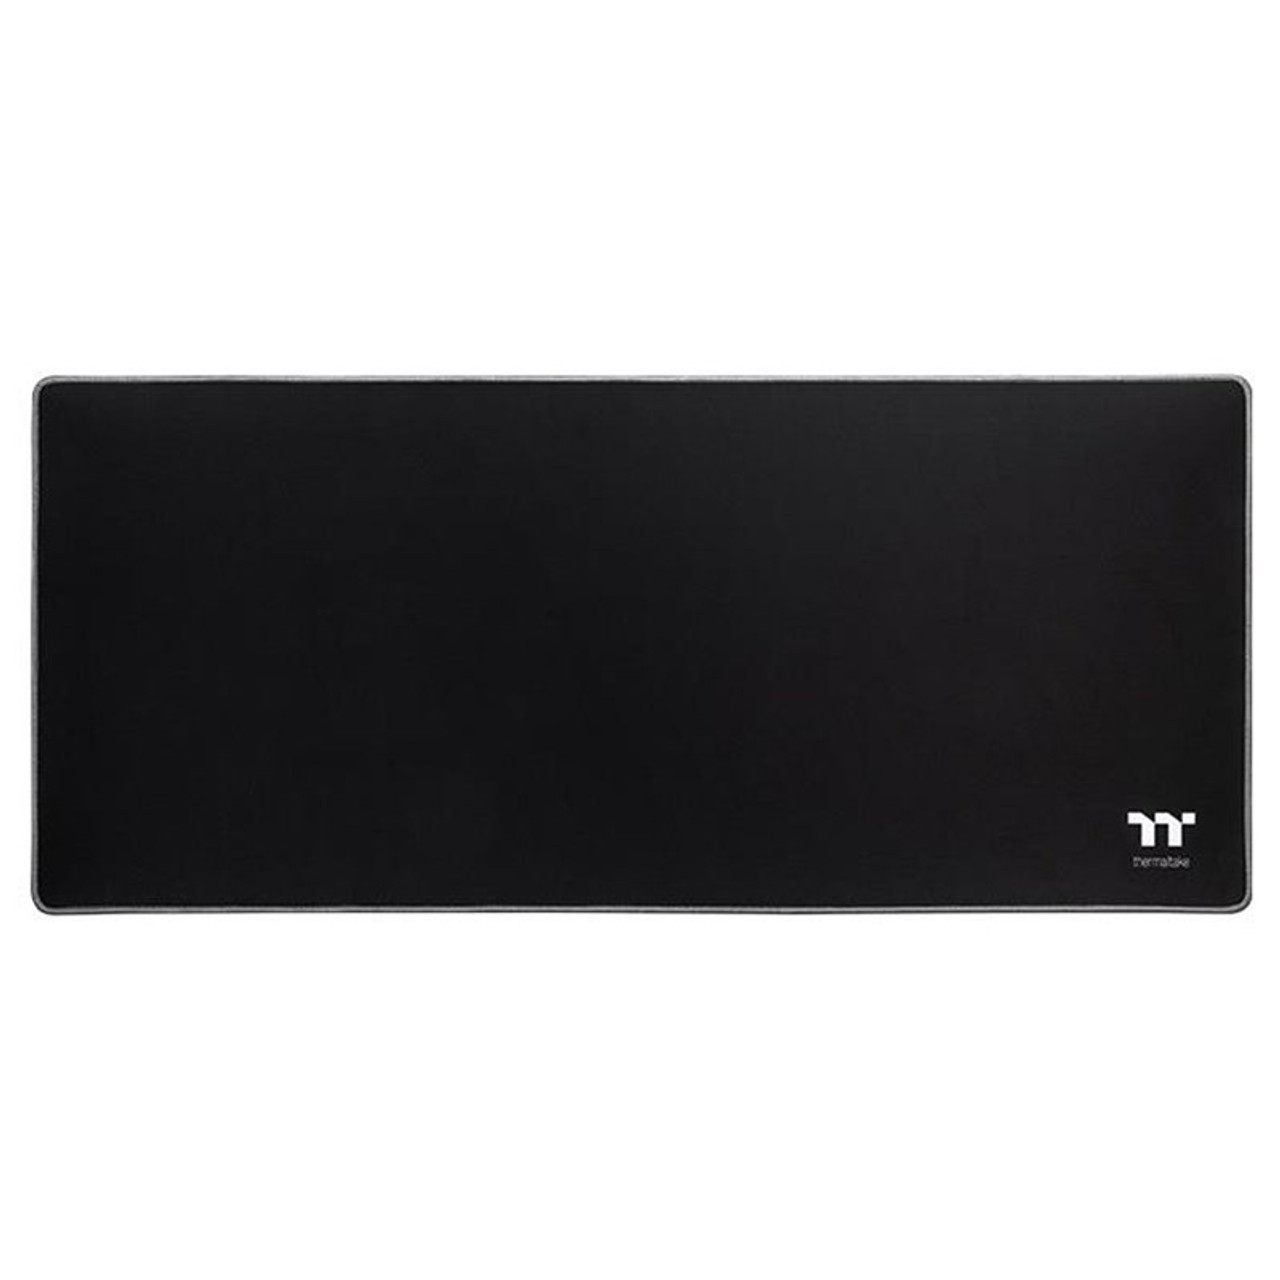 Image for Thermaltake M700 Extended Gaming Mouse Pad CX Computer Superstore